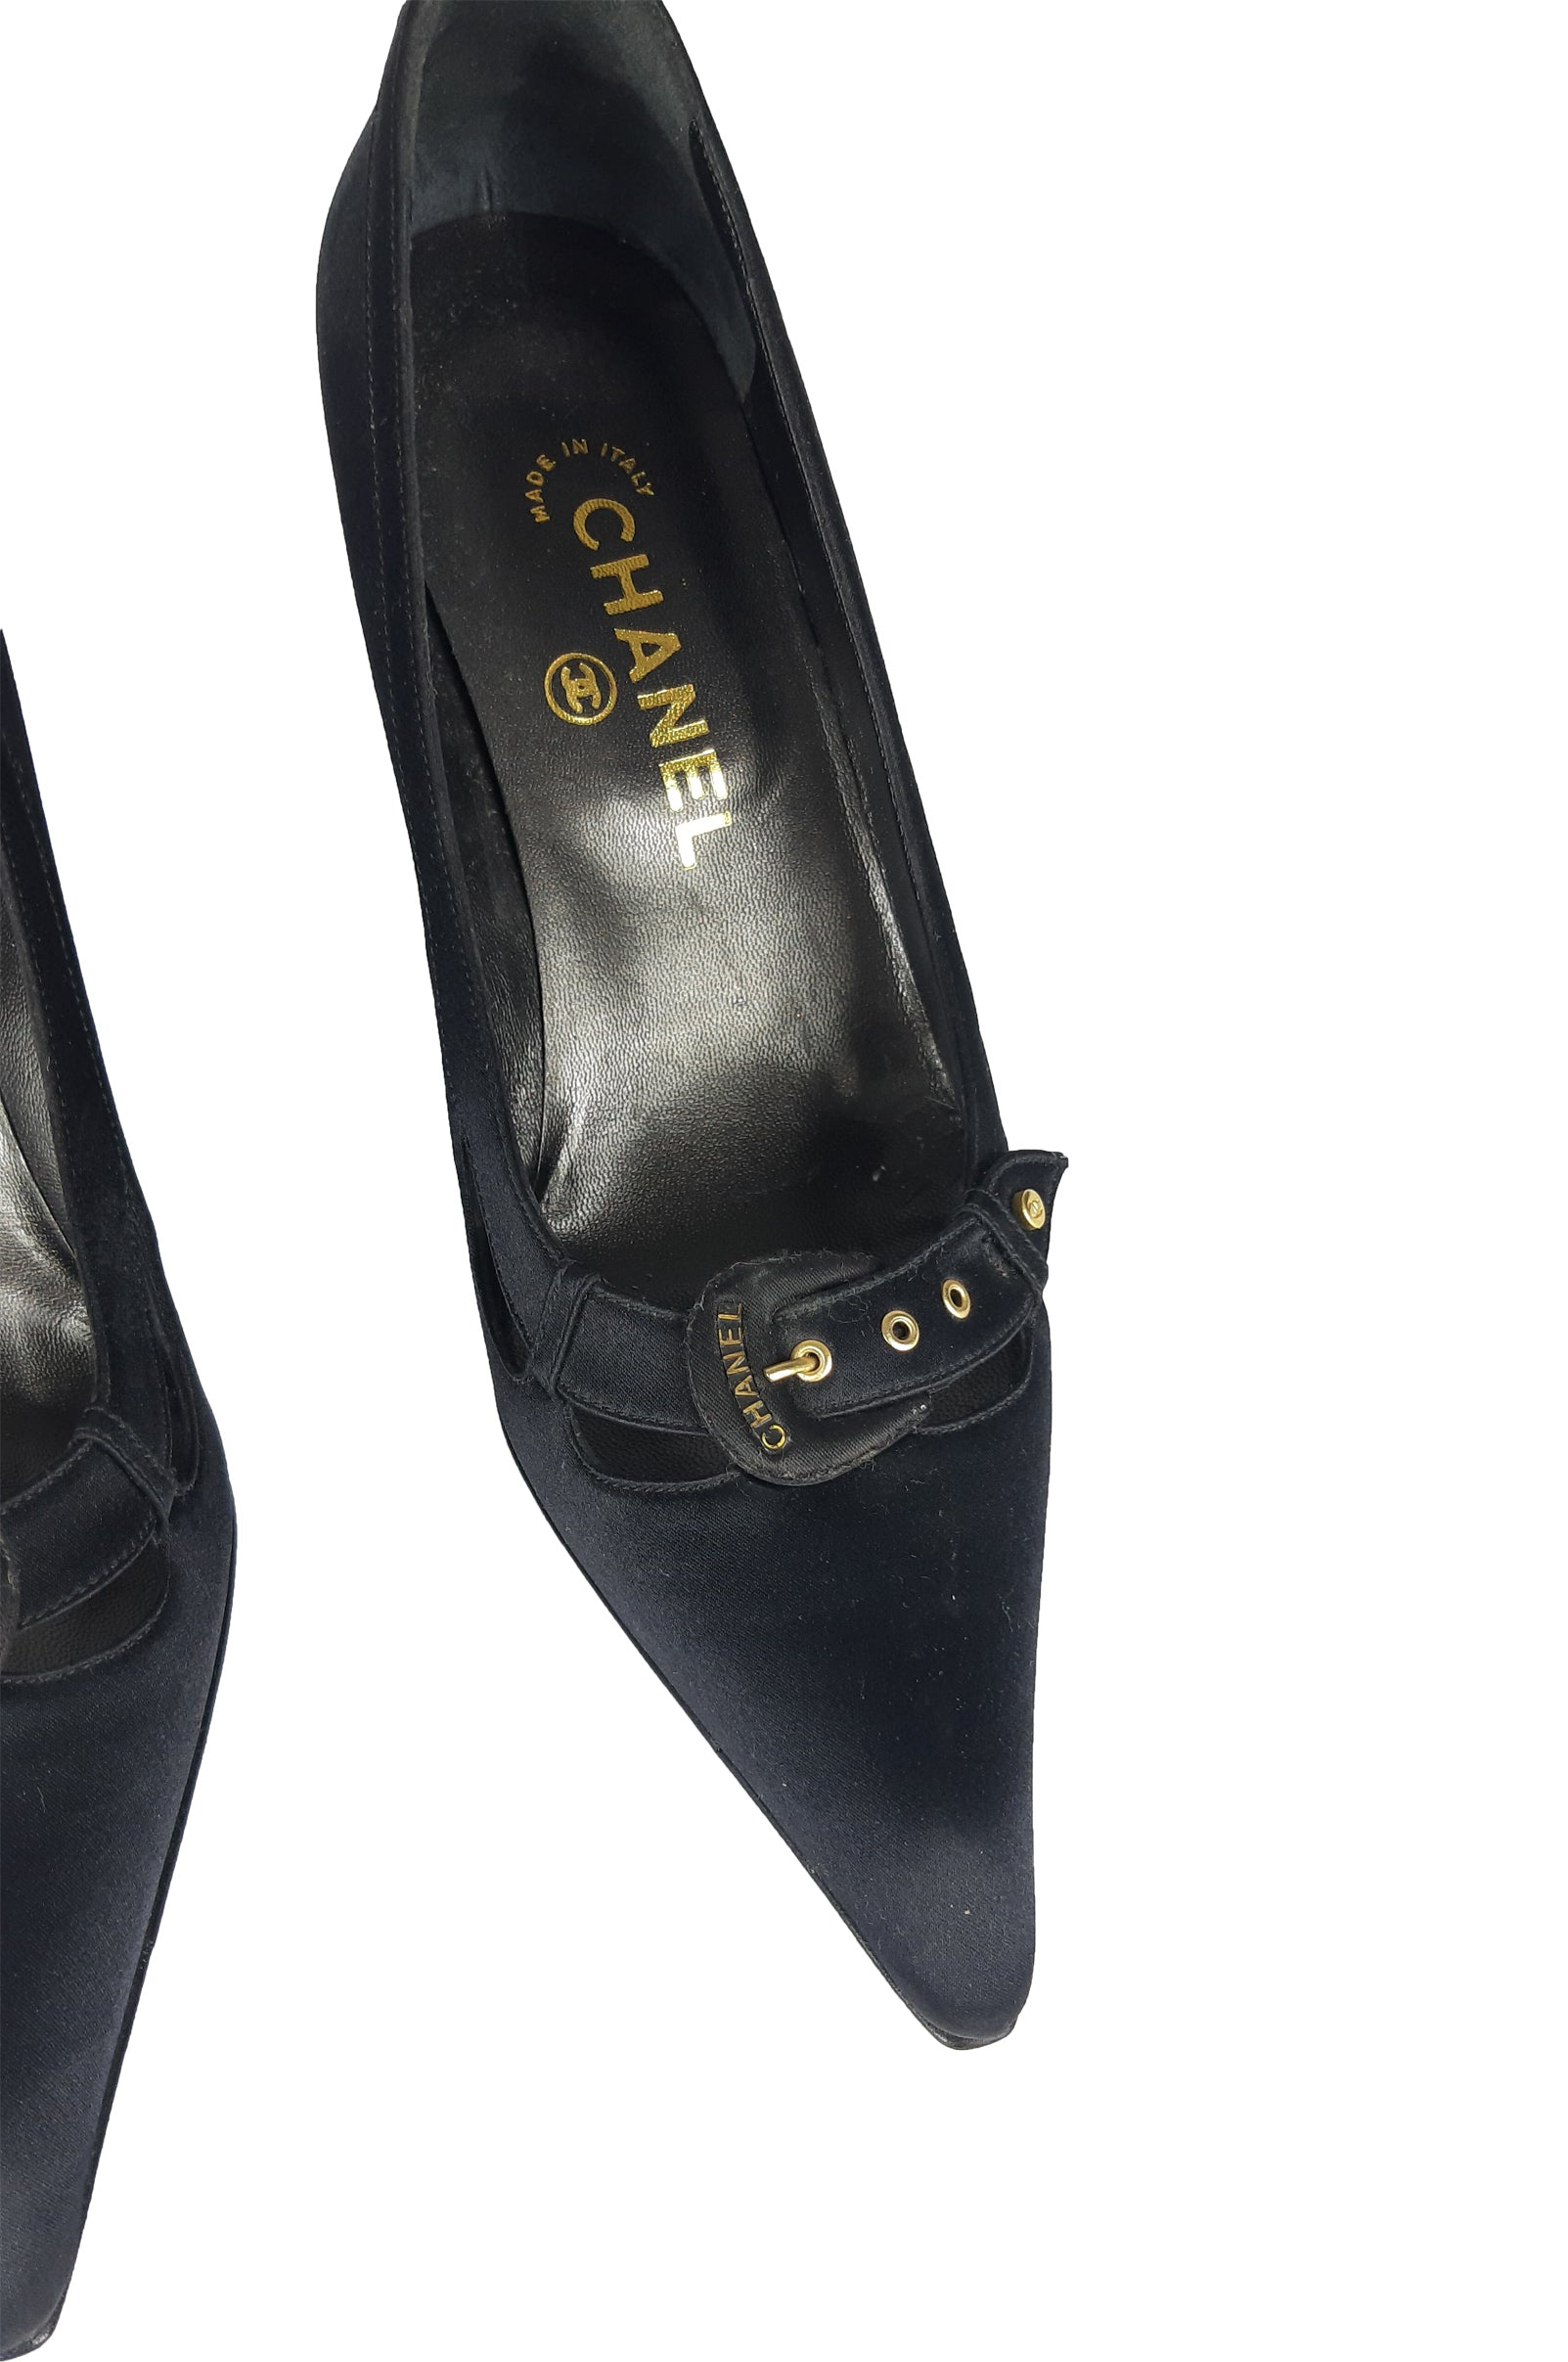 Chanel Black Stiletto with Satin Look and Buckle Detail Size 37 (EU)